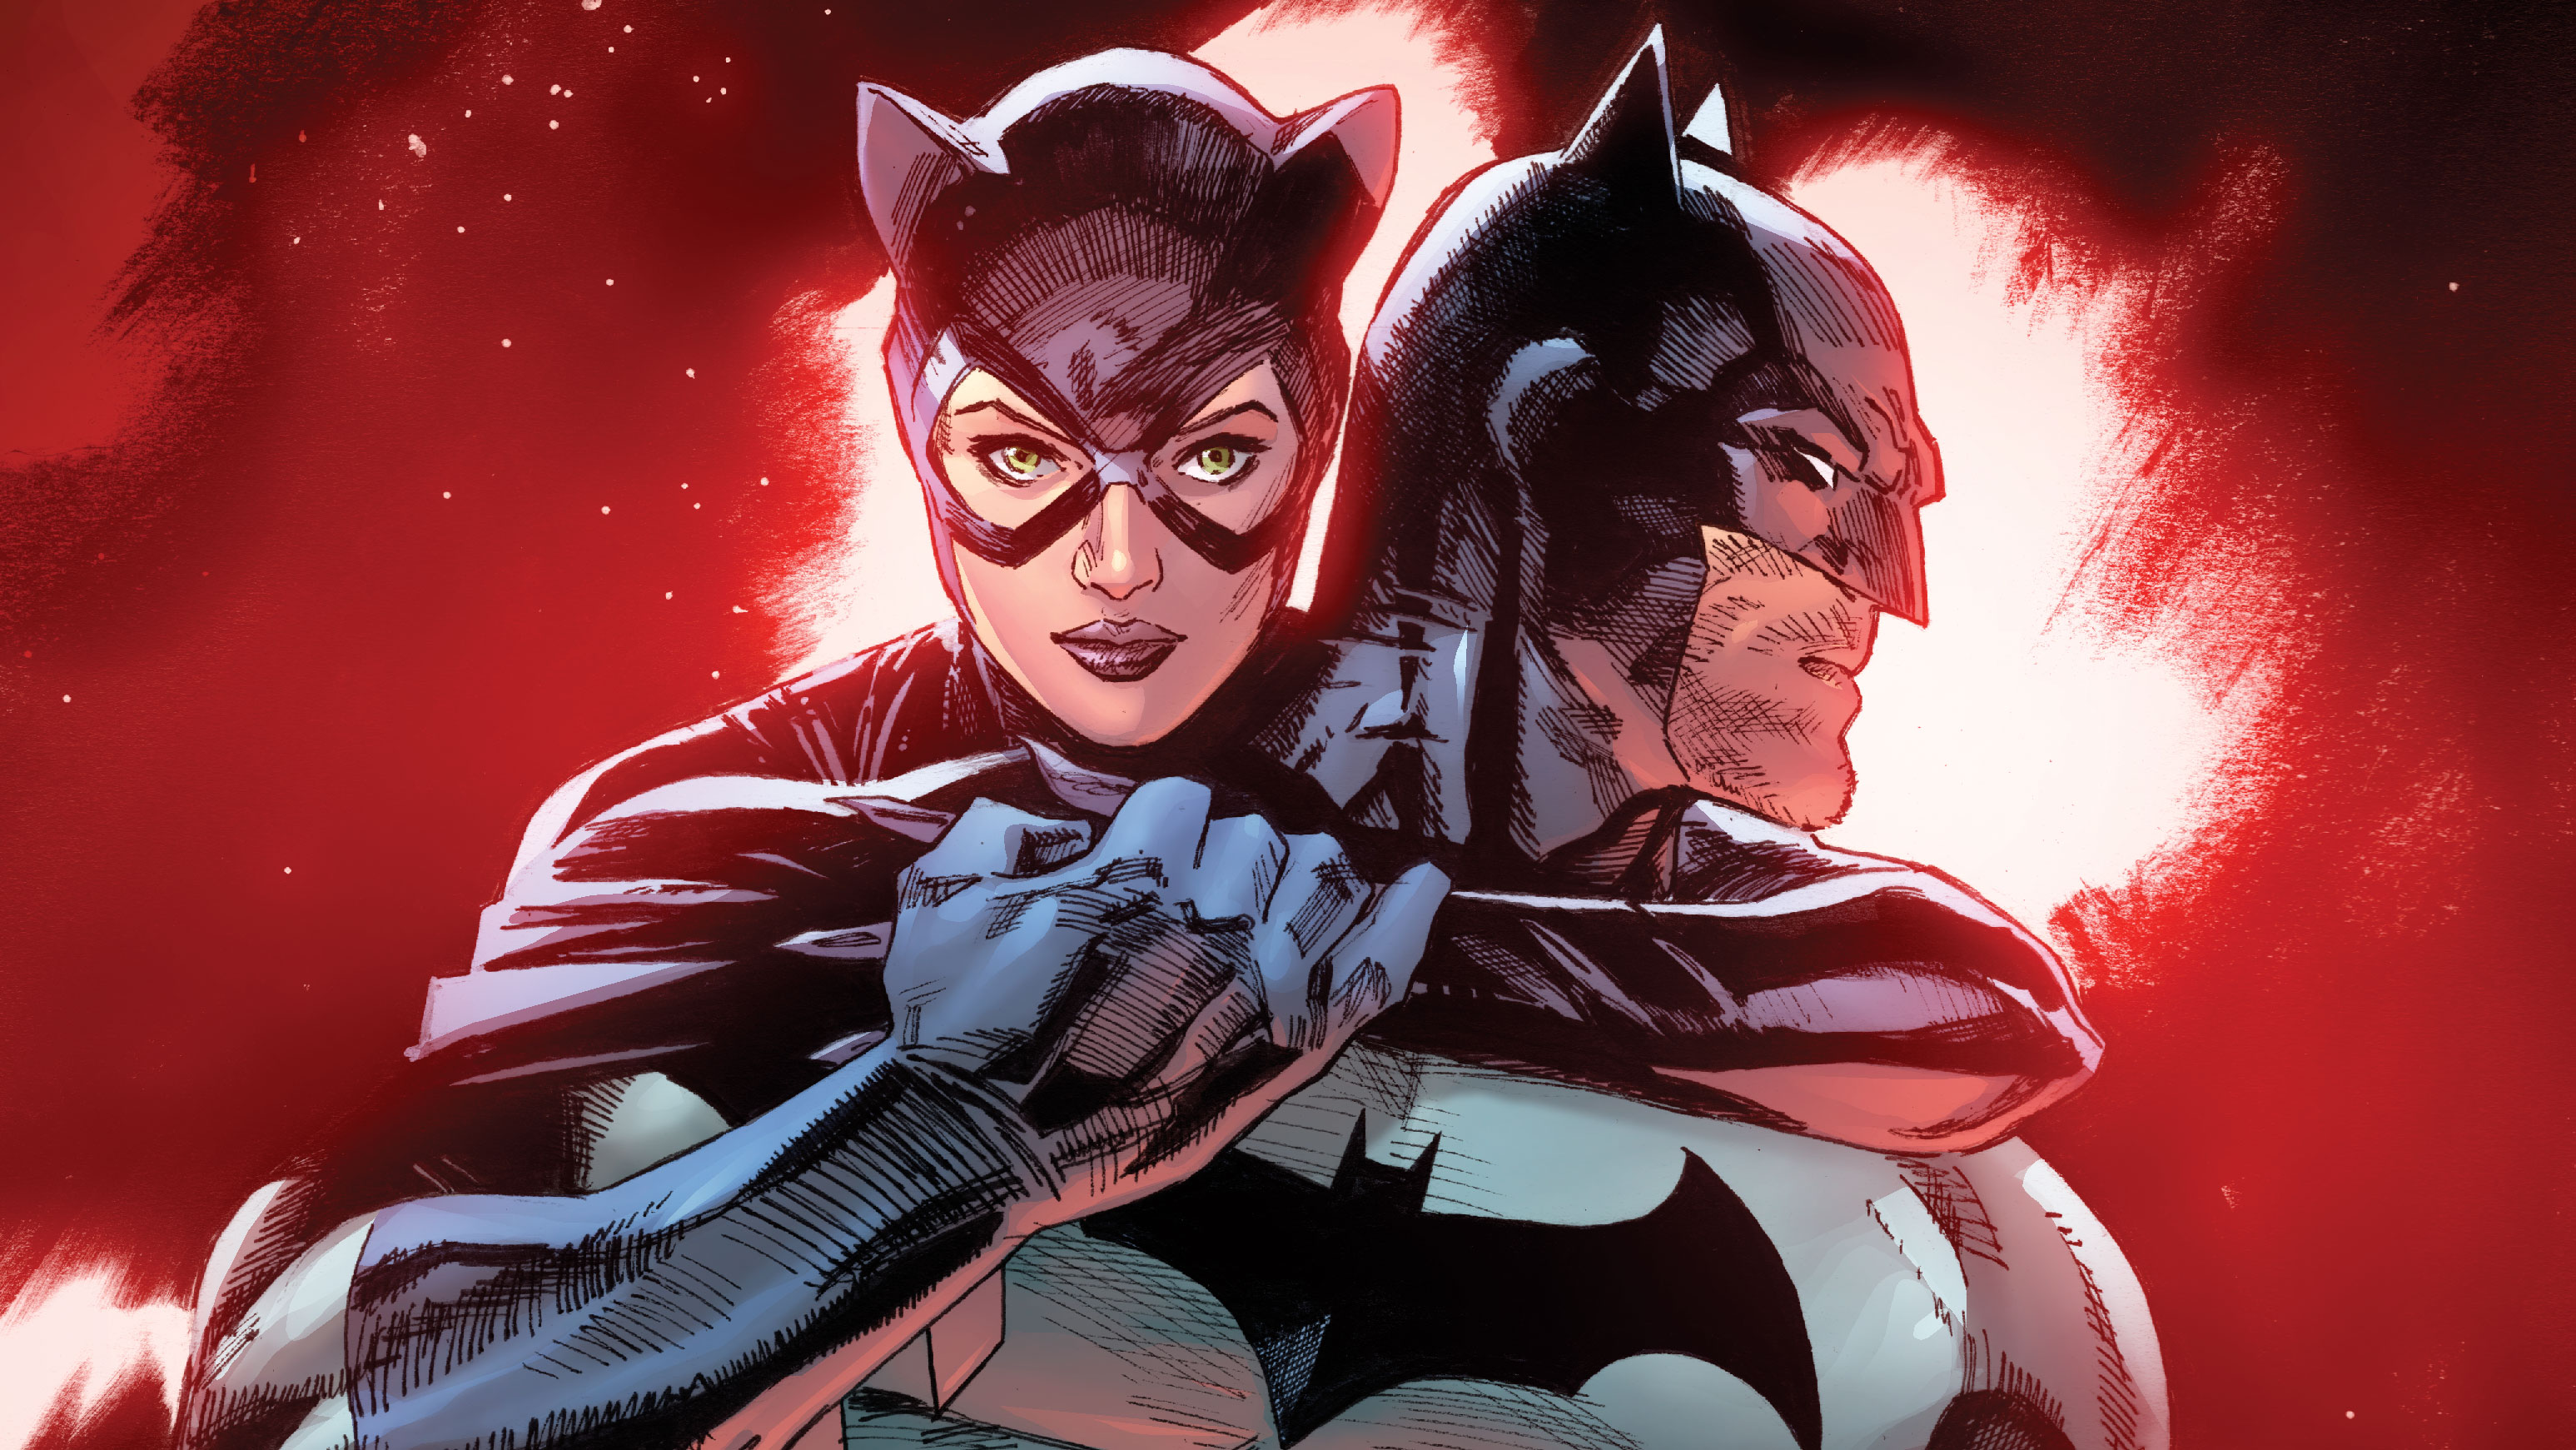 Tom King and Clay Mann's Batman/Catwoman #1 delayed past January